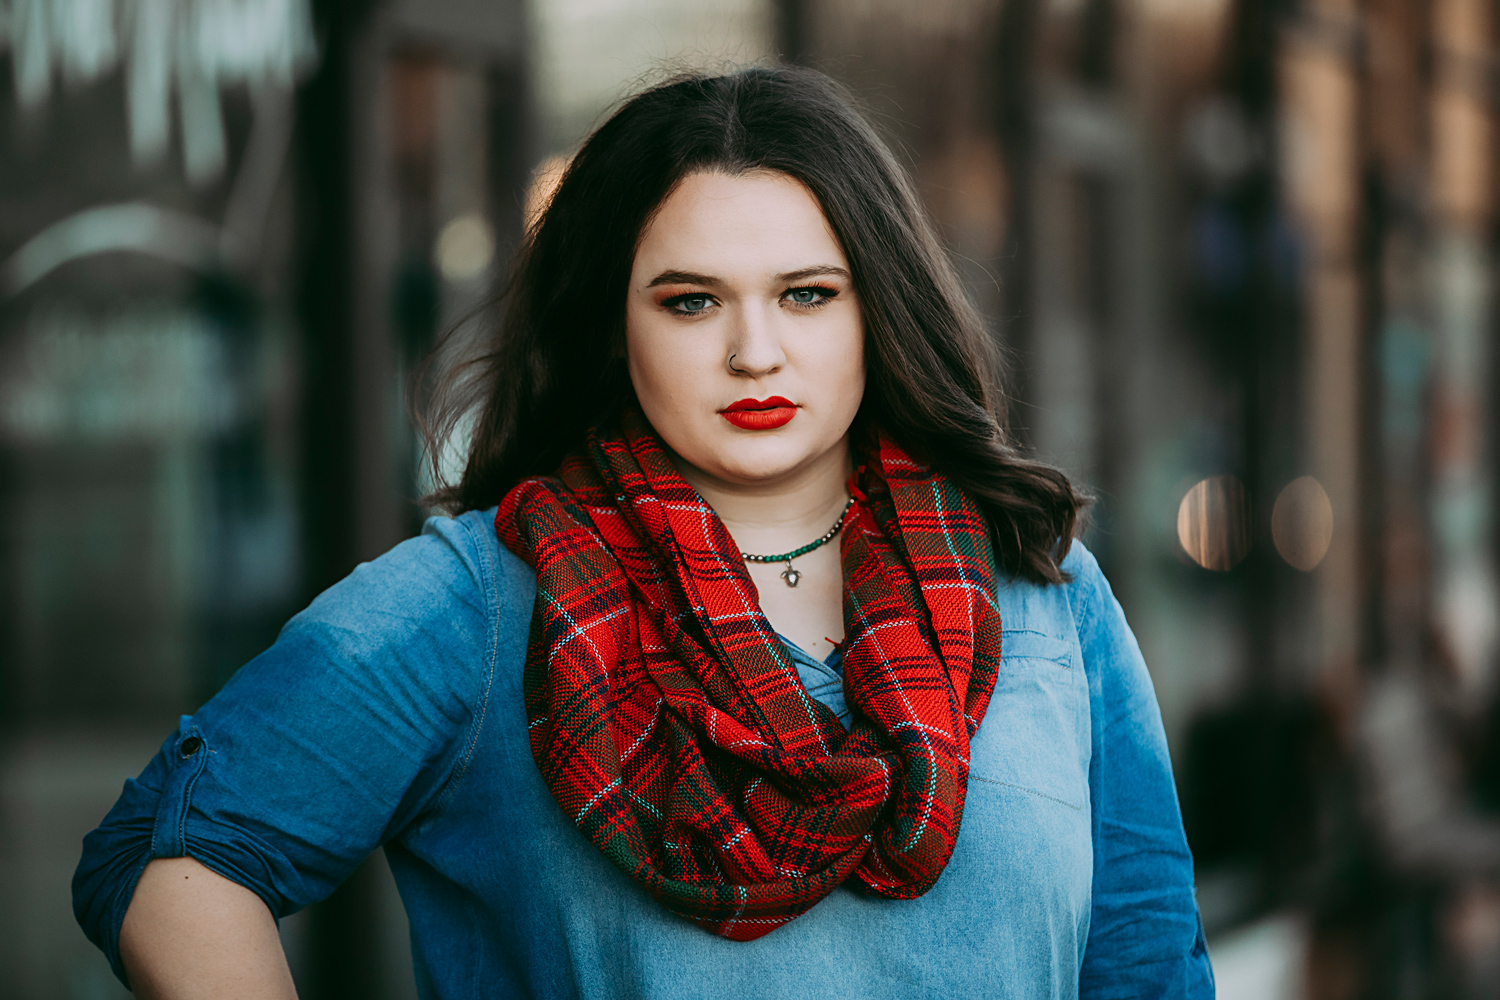 High School senior girl with long brown hair, wearing red scarf looking at camera in the Plaza District in OKC by Amanda Lynn.